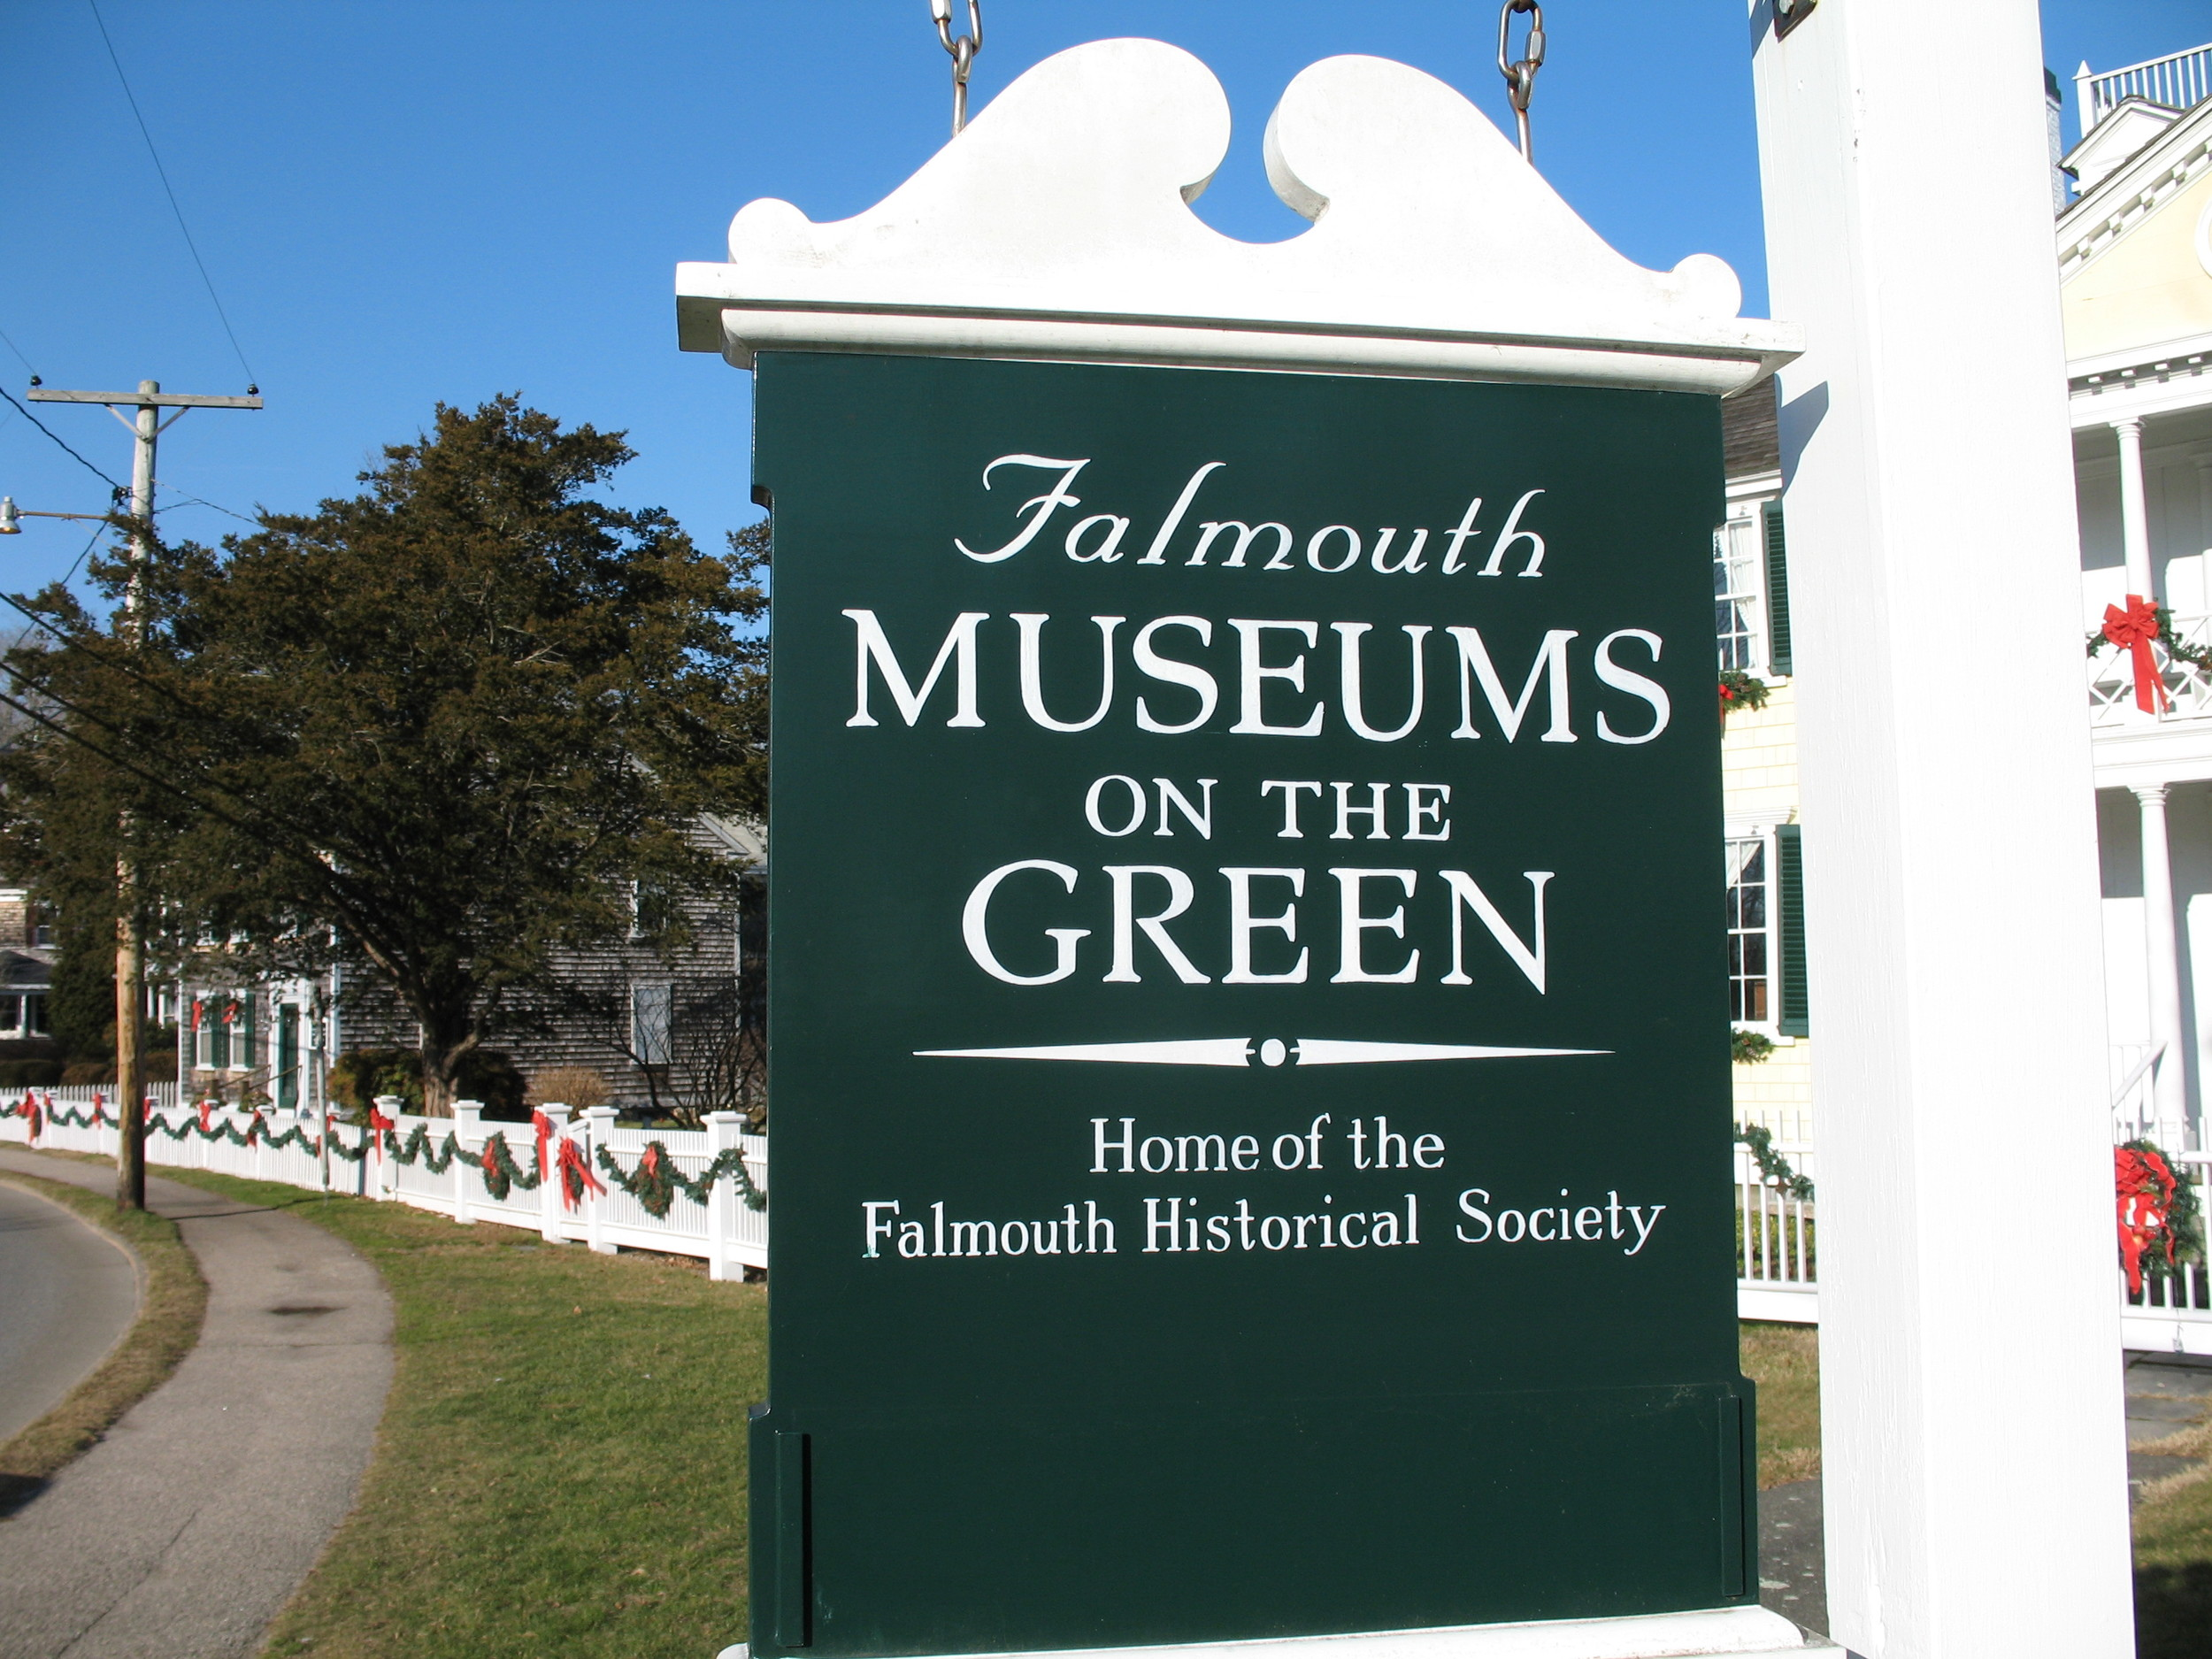 The Falmouth Village Green Historic District is a historic district encompassing the historic village center of Falmouth, Massachusetts.